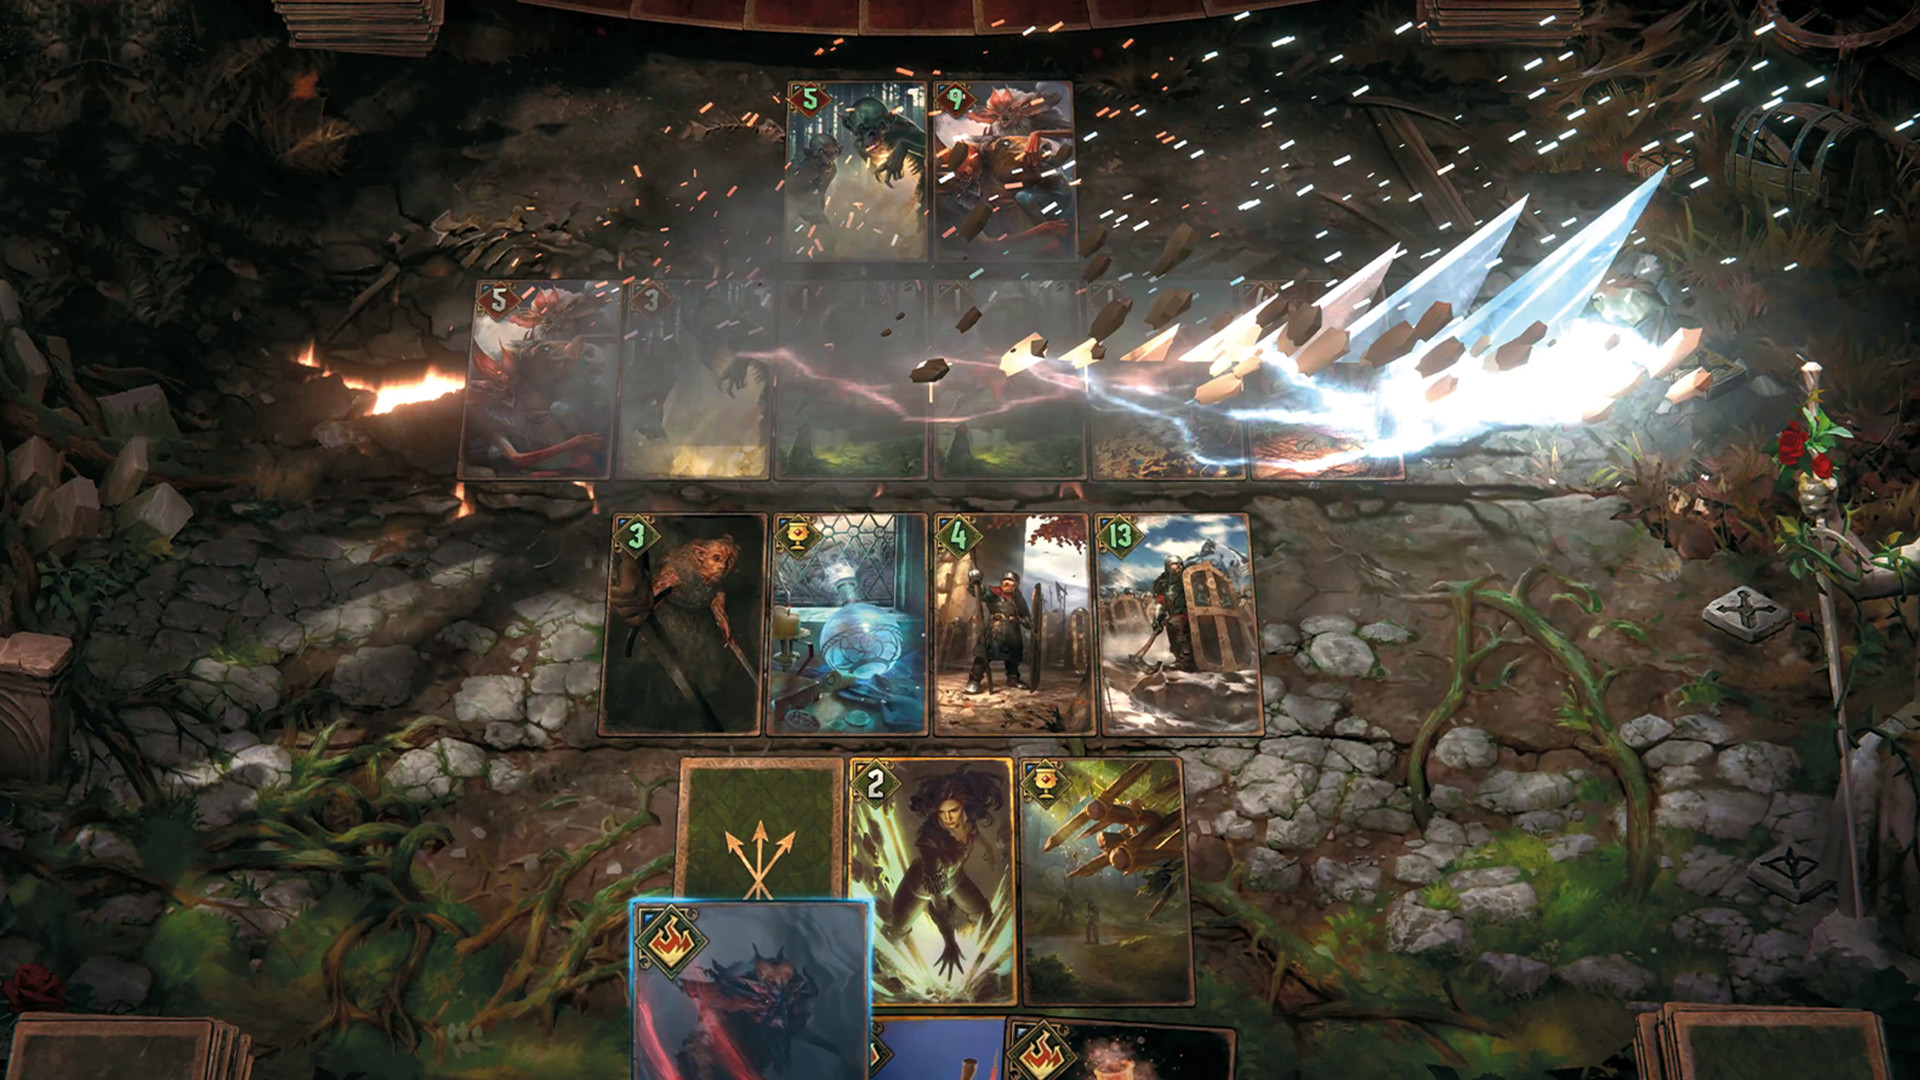 Gwent has a successful first day on Steam - htxt.africa